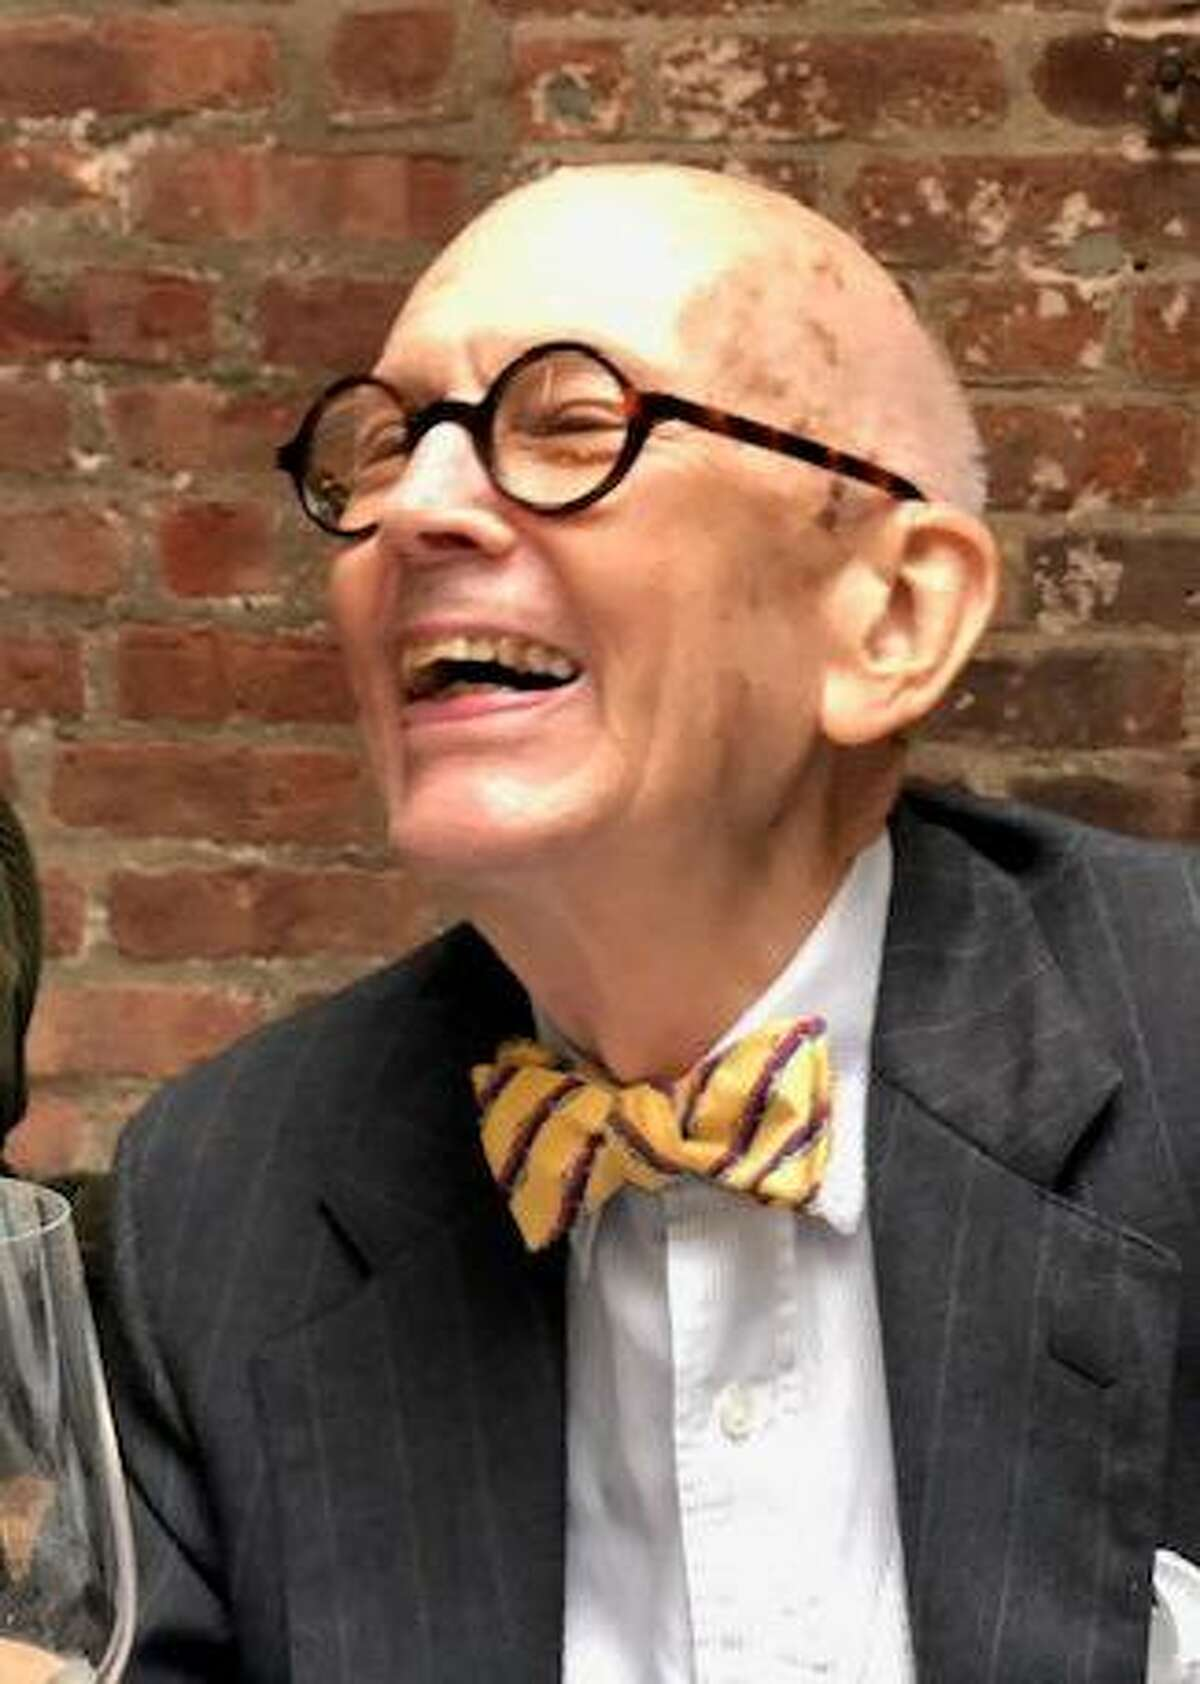 Bill Lassiter, a beacon of Houston's art community since the 1950's, died Monday at the age of 86.